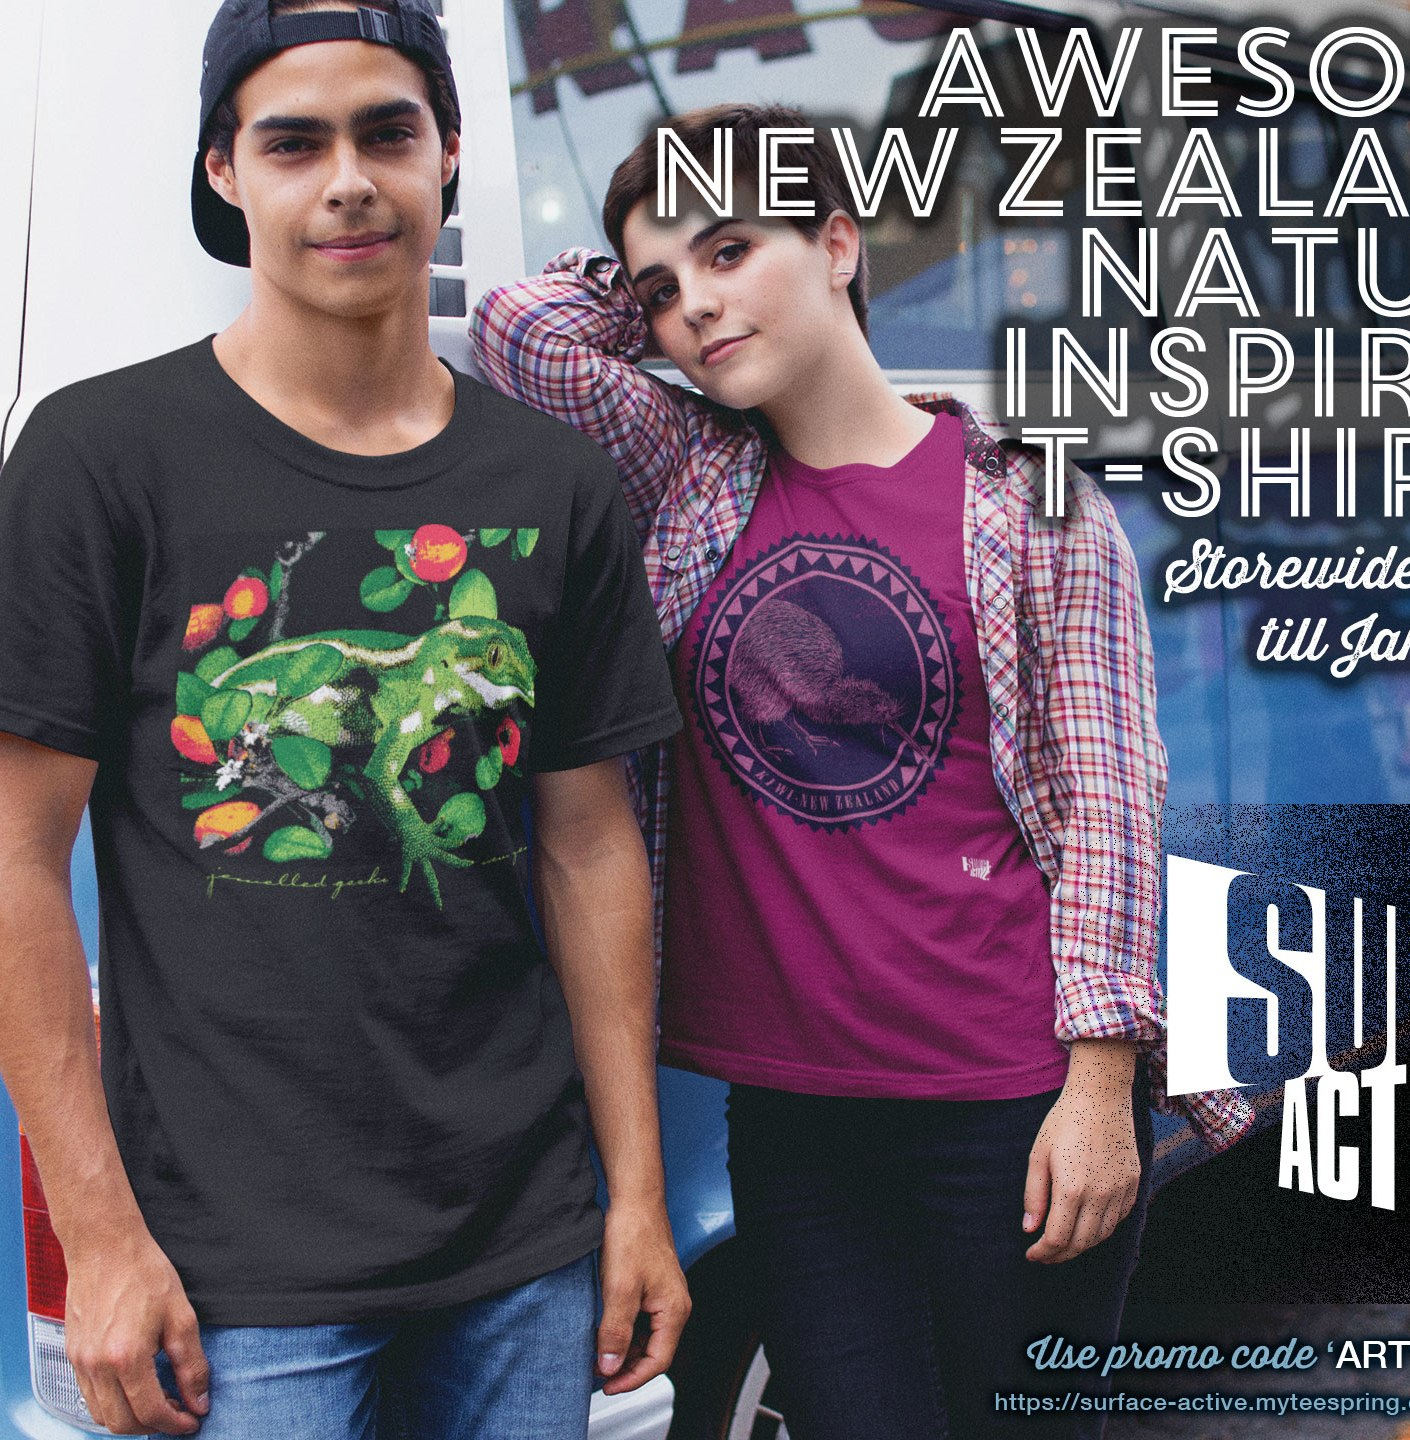 Awesome New Zealand Nature Inspired T-shirts. Storewide 15% off till Jan 5, 2021. Promotional Facebook Ad for Surface Active New Zealand Artwear T-shirts. . Young couple wearing a jewelled gecko New Zealand and a kiwi New Zealand t-shirt leaning against a blue VW Kombi van.